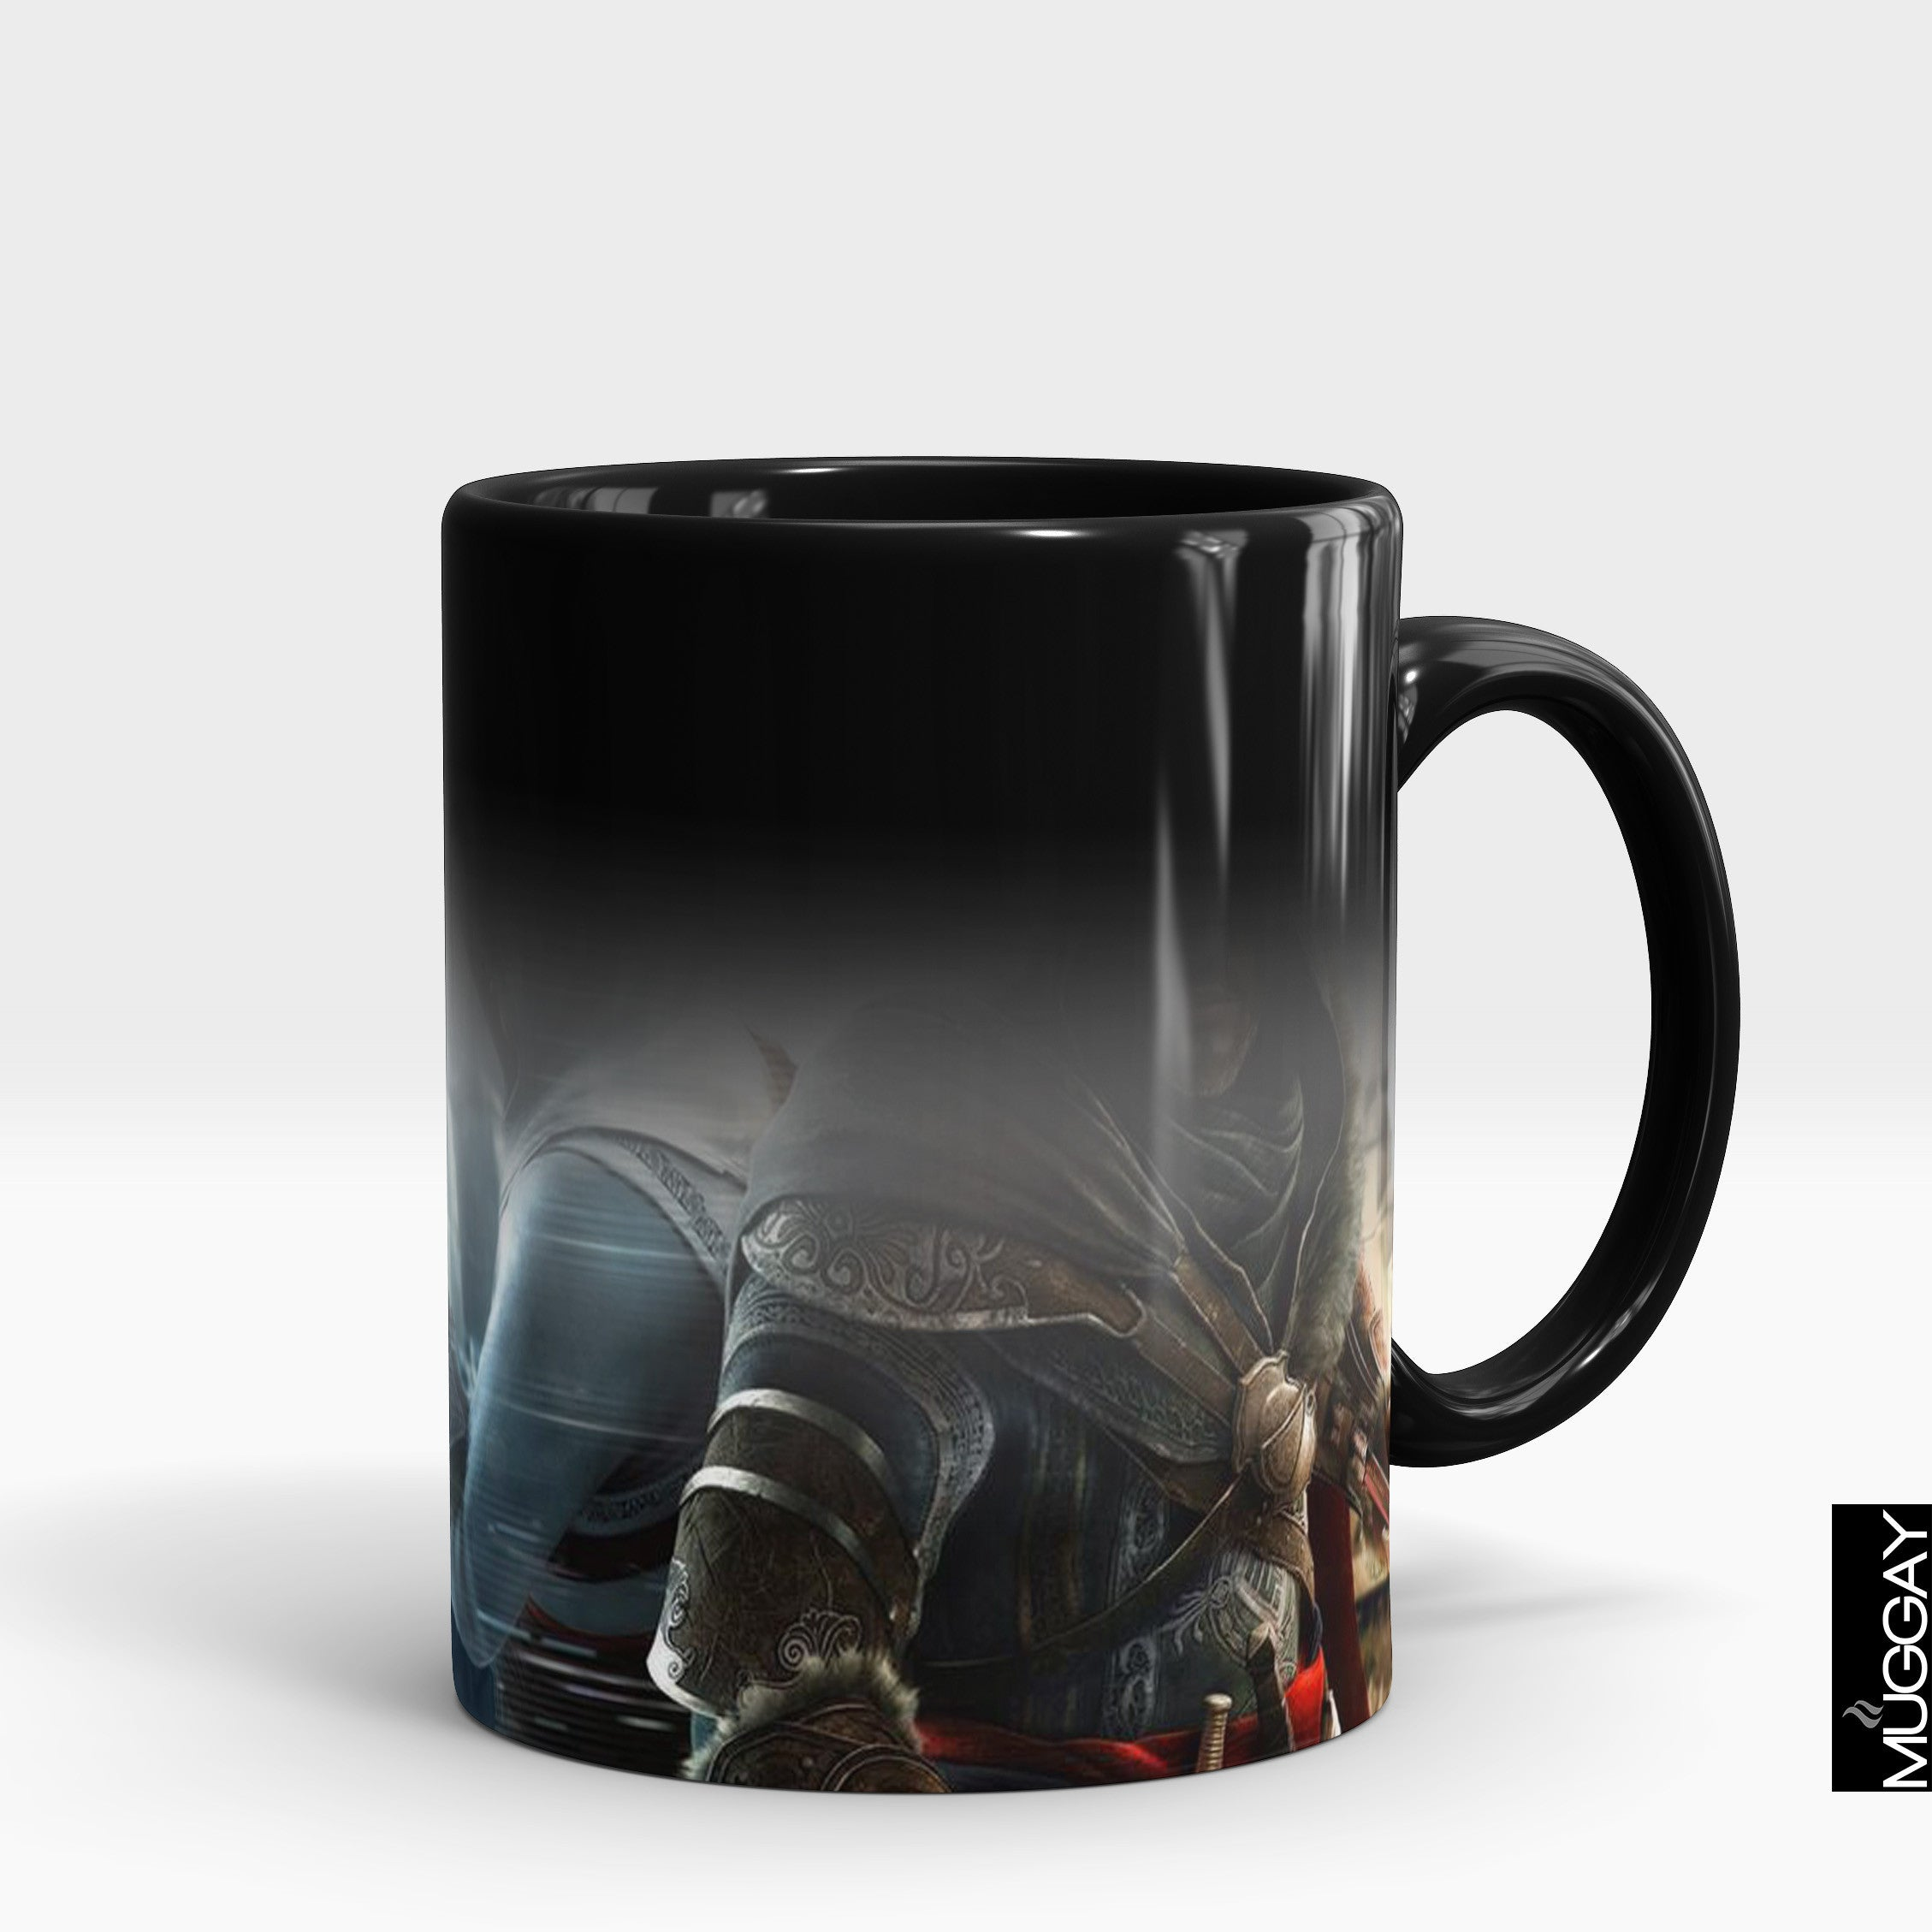 Assasins creed mugs - ac7 - Muggay.com - Mugs - Printing shop - truck Art mugs - Mug printing - Customized printing - Digital printing - Muggay